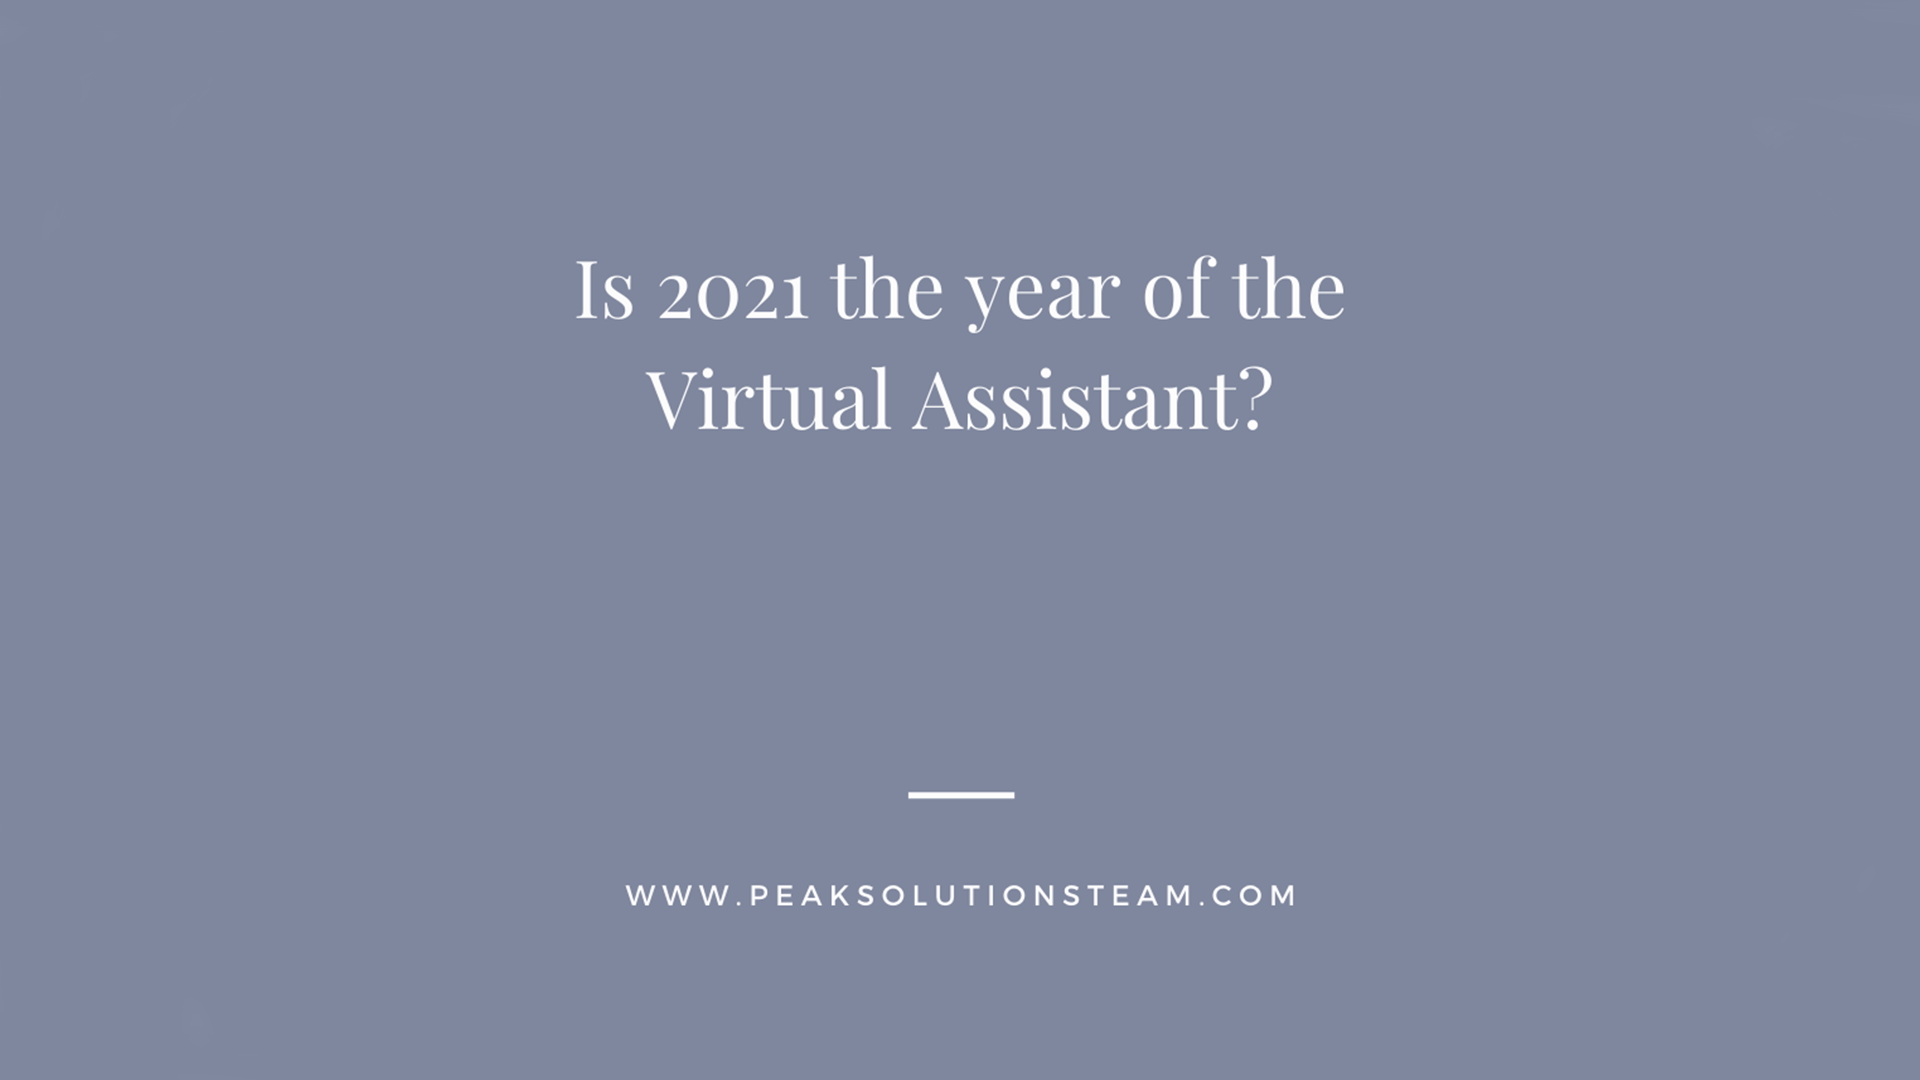 Peak-solutions-Is 2021 the year of the Virtual Assistant